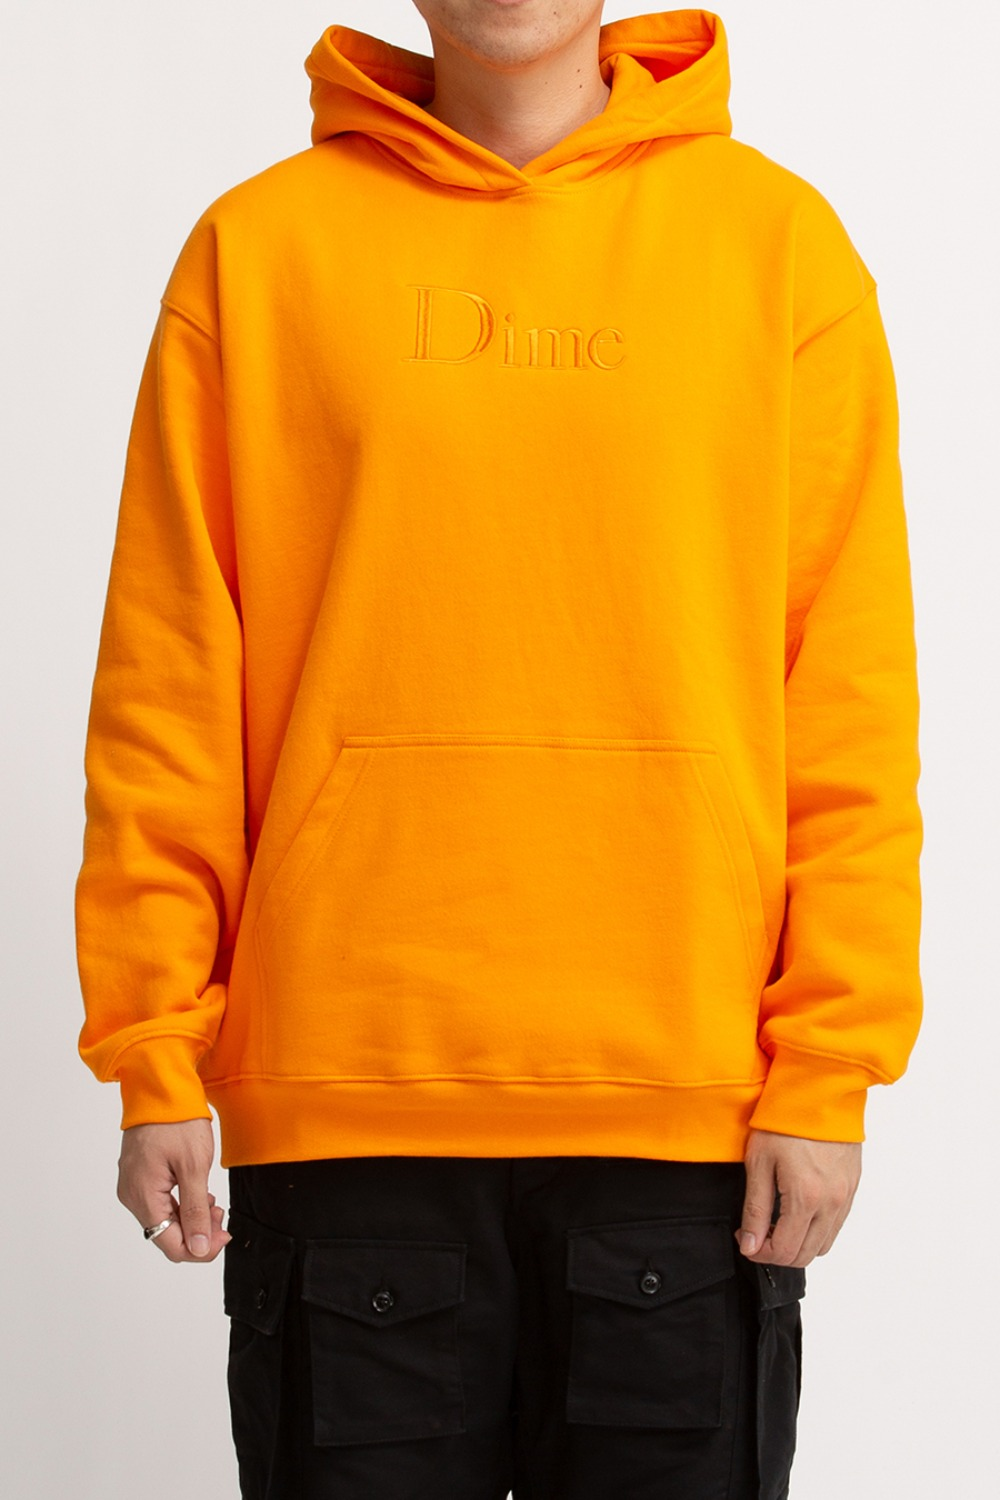 DIME CLASSIC LOGO EMBROIDERED HOODIE ORANGE